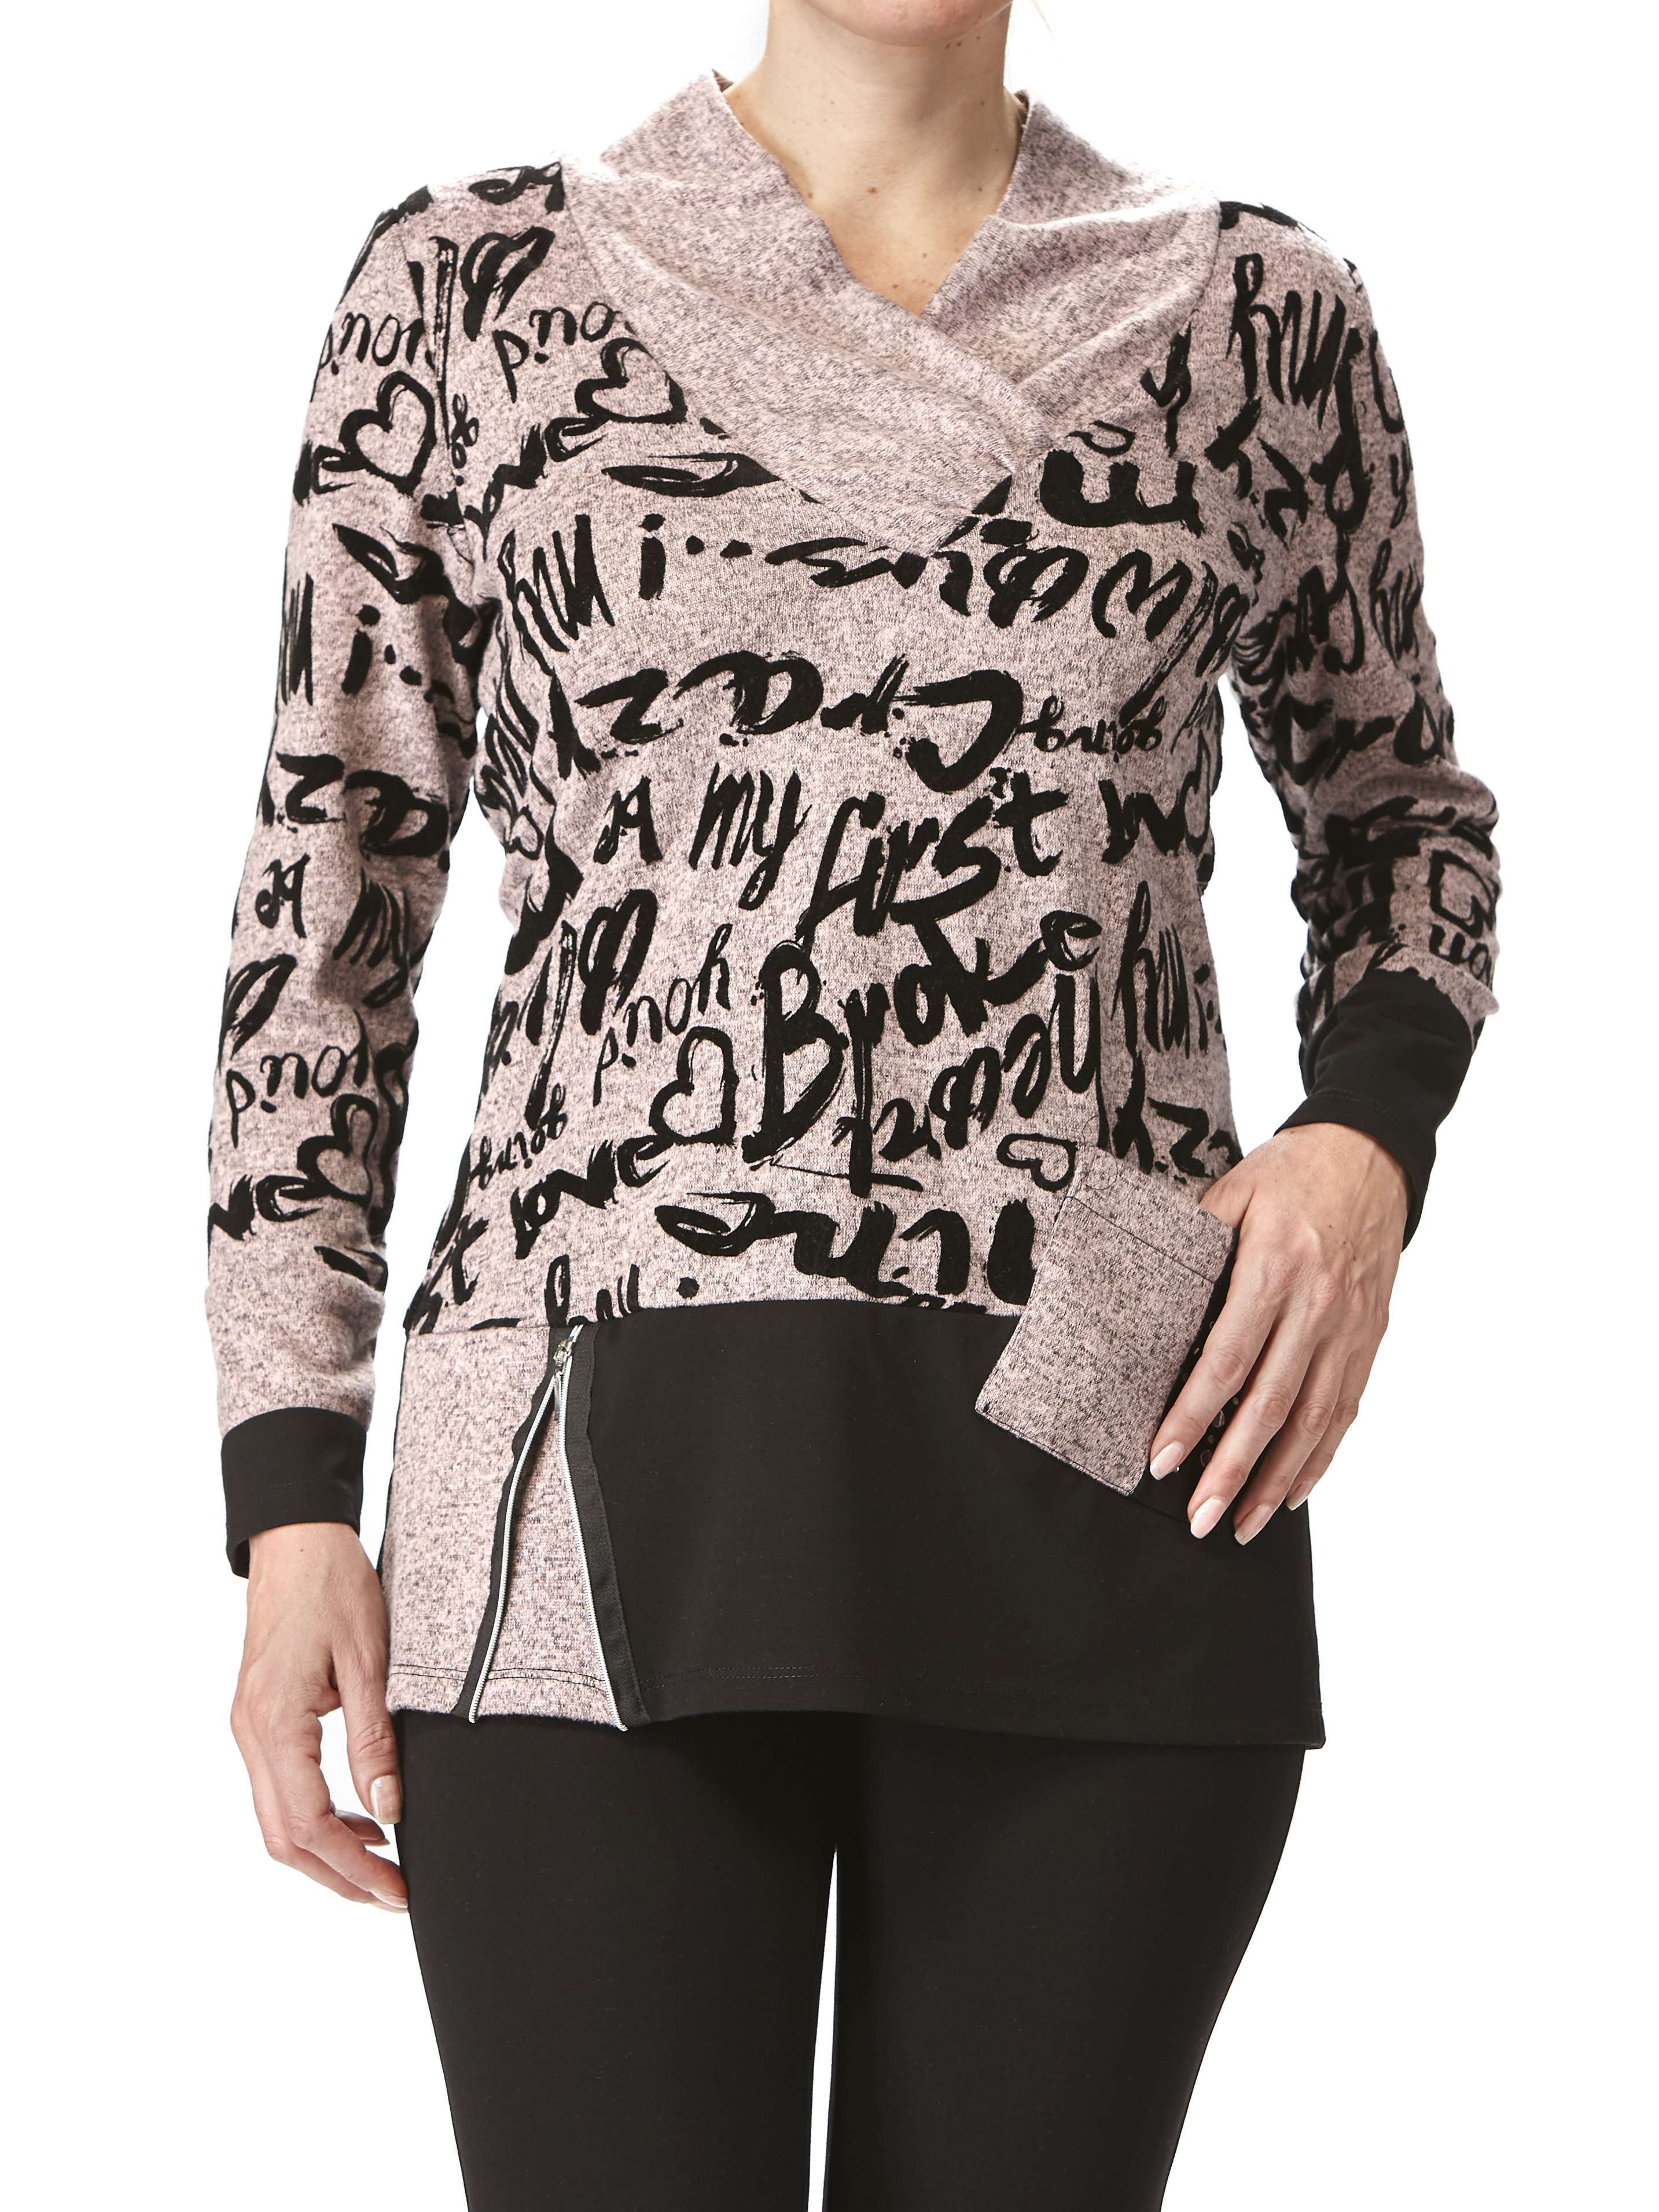 Women's Tops Made in Canada Rose and Black Print Flattering Fit - Yvonne Marie - Yvonne Marie